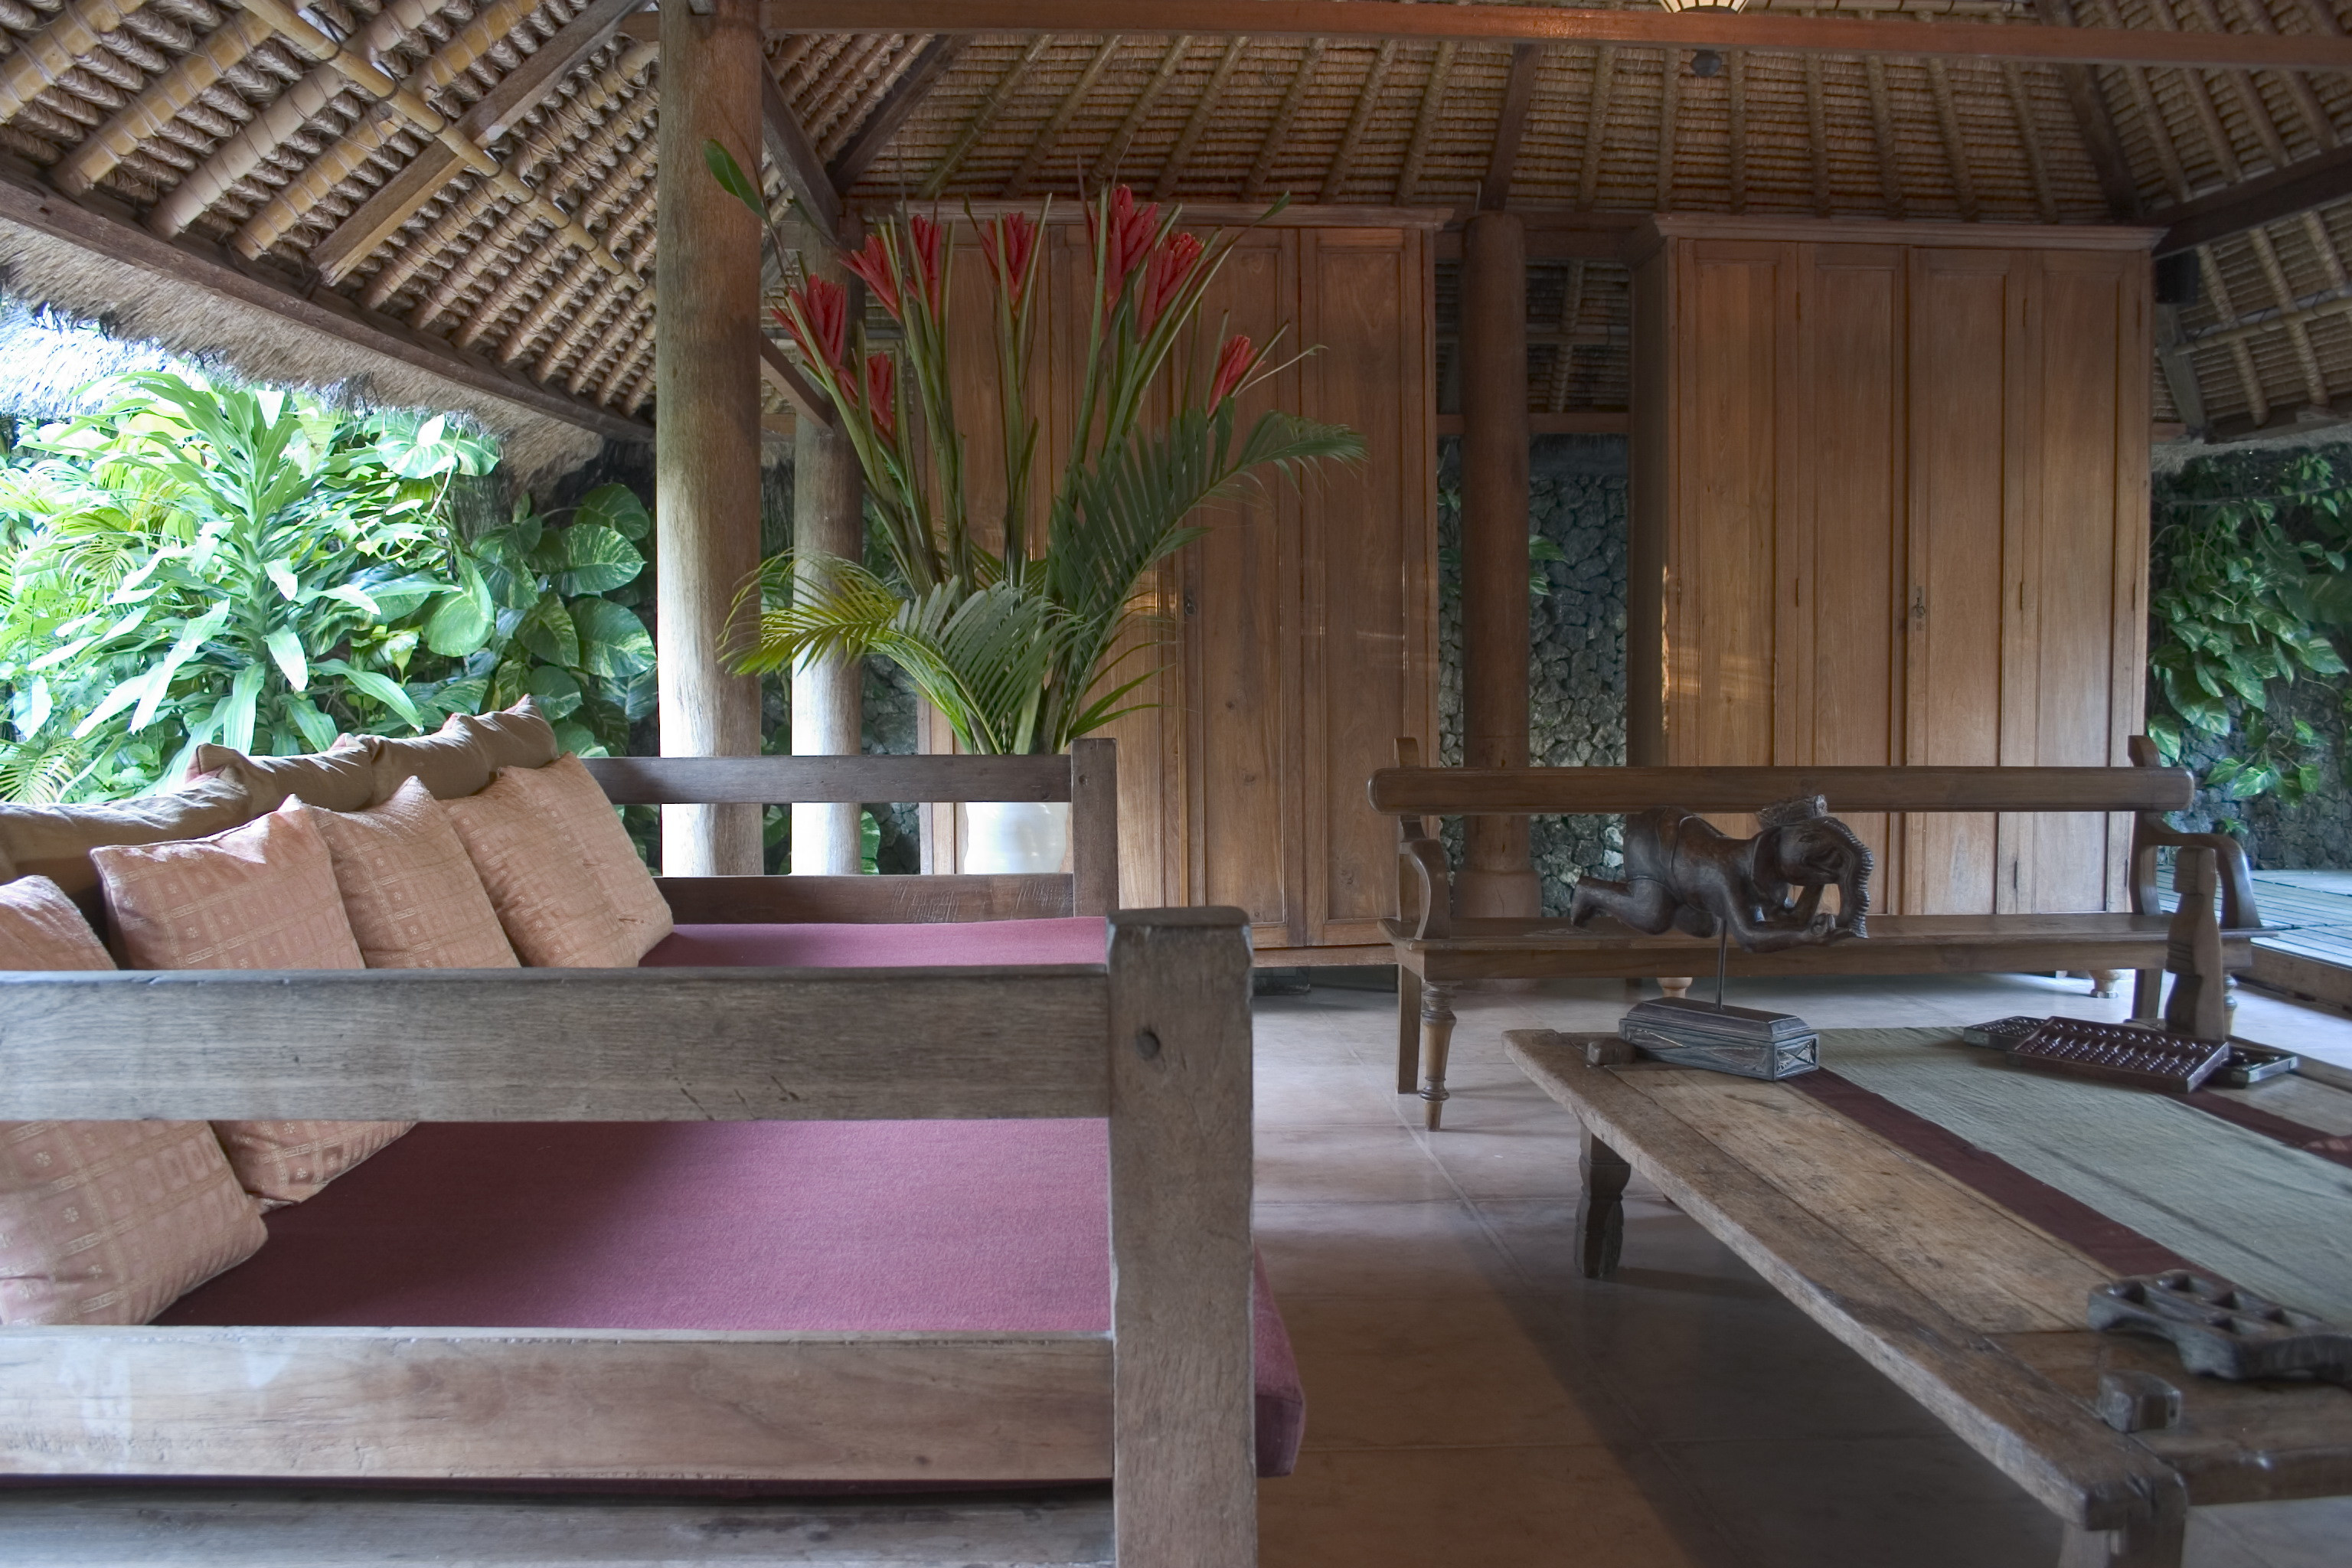 The Shaba Hotel Bali Jimbaran, Jimbaran Bali, Luxushotel Bali Indonesien 5 Sterne Hotel Jimbaran Luxusvilla, Luxusvilla Bali Indonesien 5 Sterne Hotels Jimbaran, luxury villa Bali Indonesia 5 star hotels Jimbaran Boutique Hotel, 5 étoiles Bali villa de luxe Indonésie Jimbaran, villa luxe Bali Indonesie hôtel cinq étoiles de lux, Bali, Luxury Hotel Indonesia<br><br>Luxury Hotels Worldwide 5 Star Hotels and Five Star Resorts<br><br>The images displayed on websites of DLW Luxury Hotels Worldwide - Hotelreservations Worldwide are owned by DLW Hotels or third parties and are therefore the property of DLW Hotels or others.